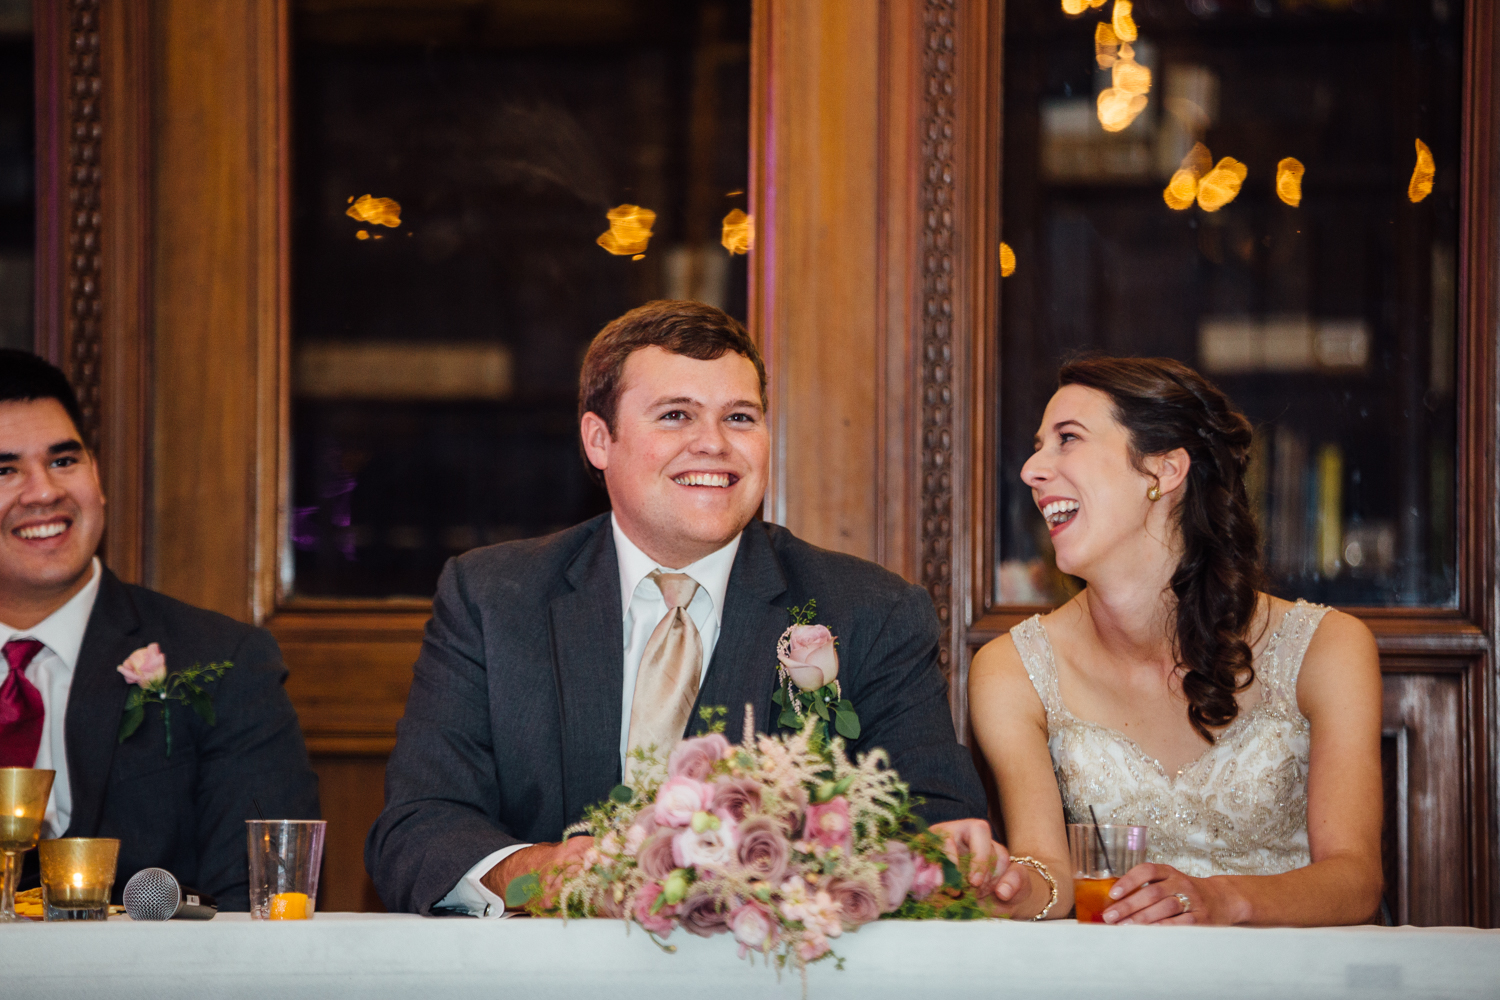 Fun, Intimate Spring Wedding by Corrie Mick Photography-88.jpg